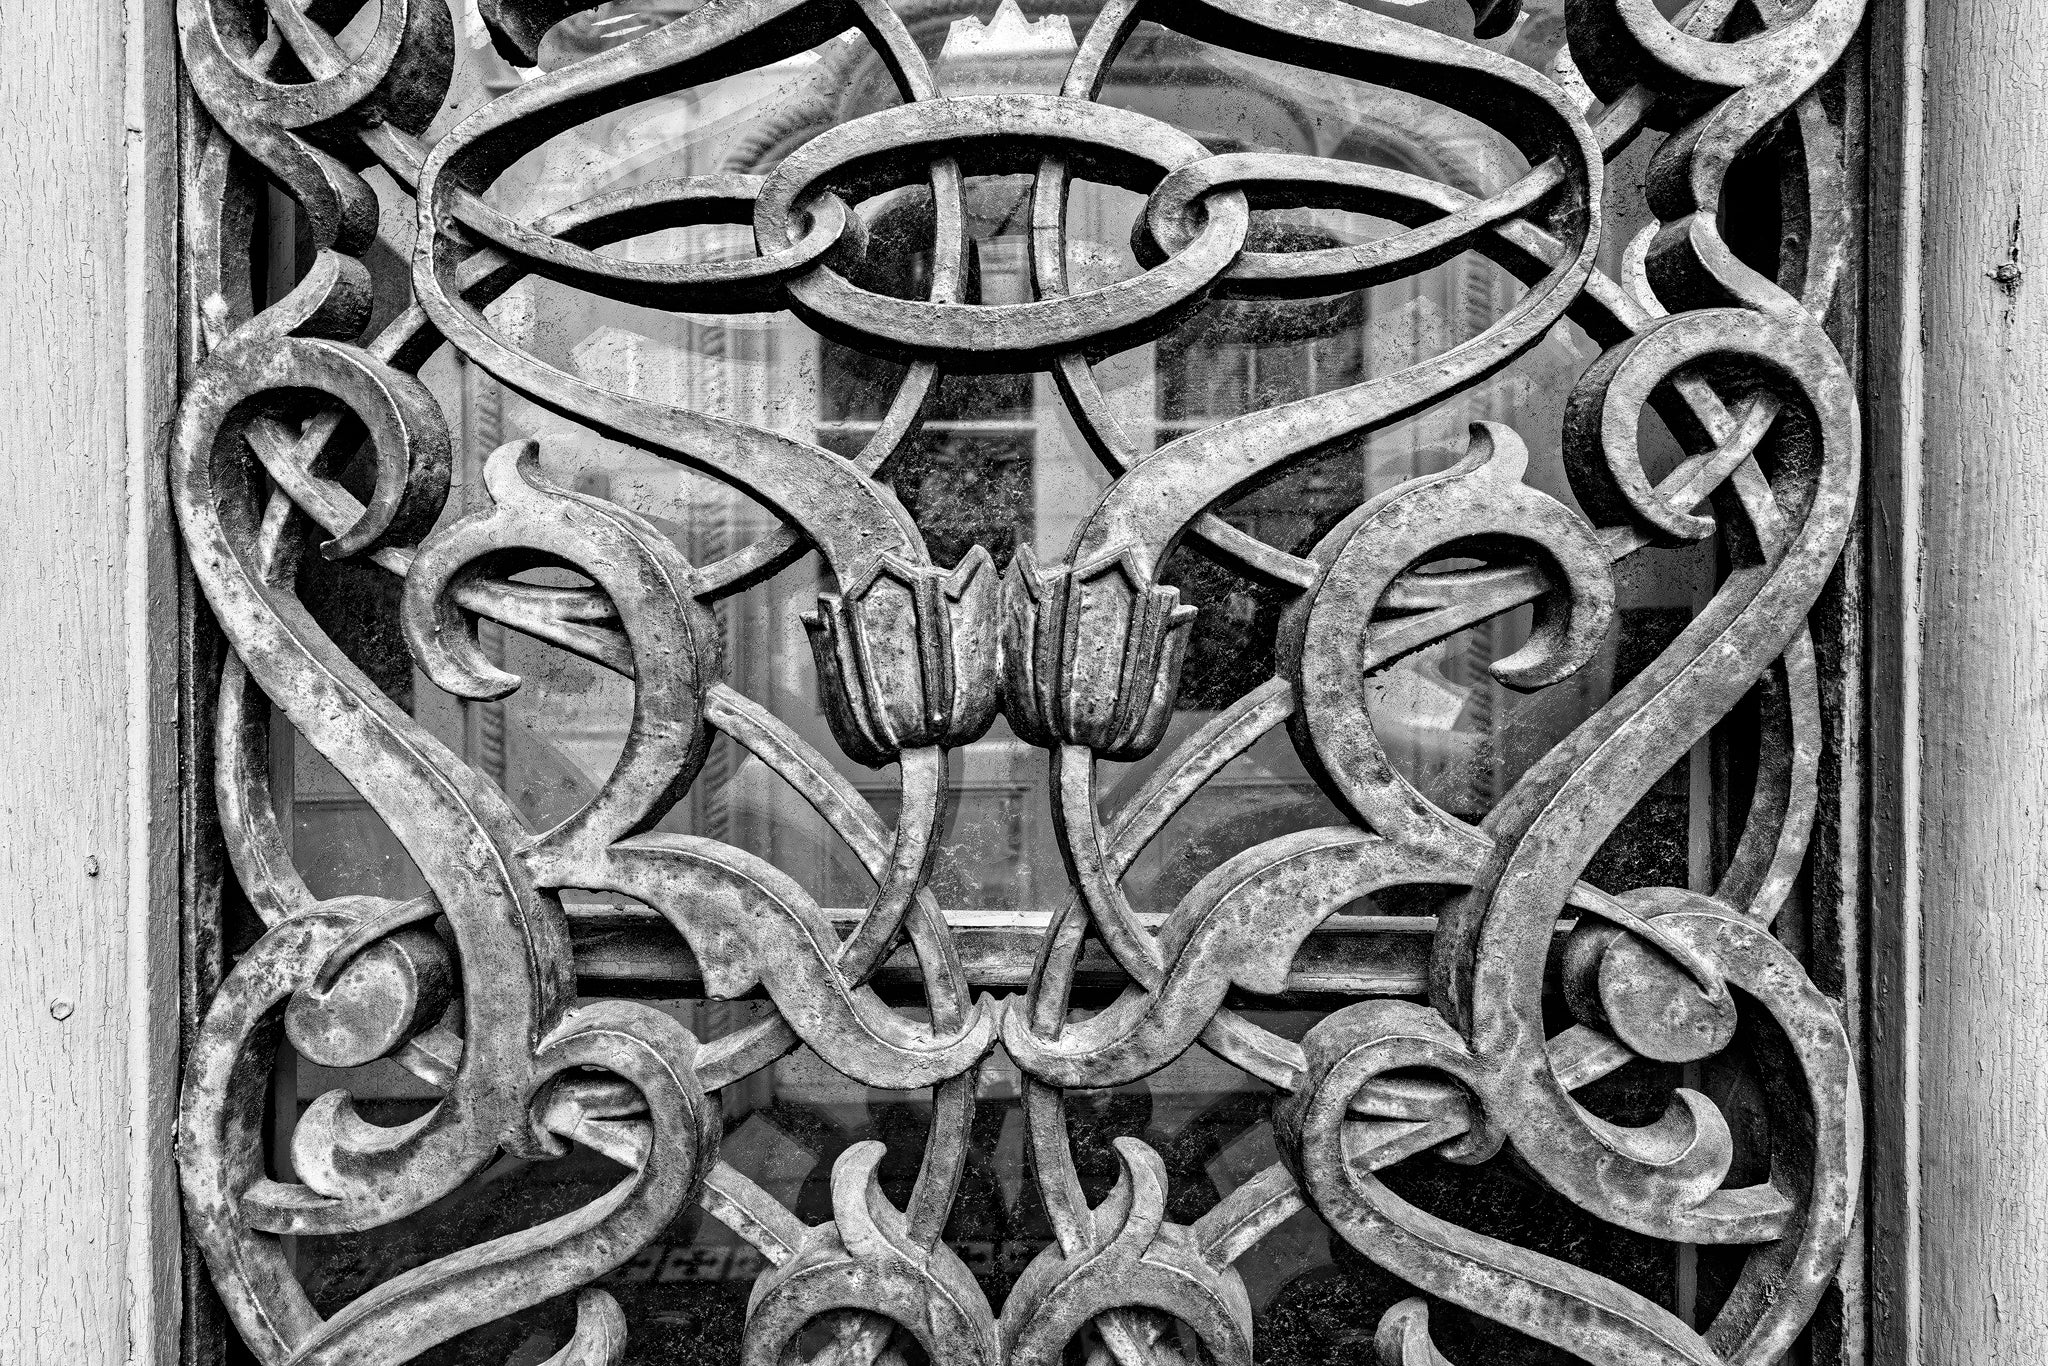 Charleston Ironwork Detail - Black and White Photograph by Keith Dotson. Buy a fine art print here.